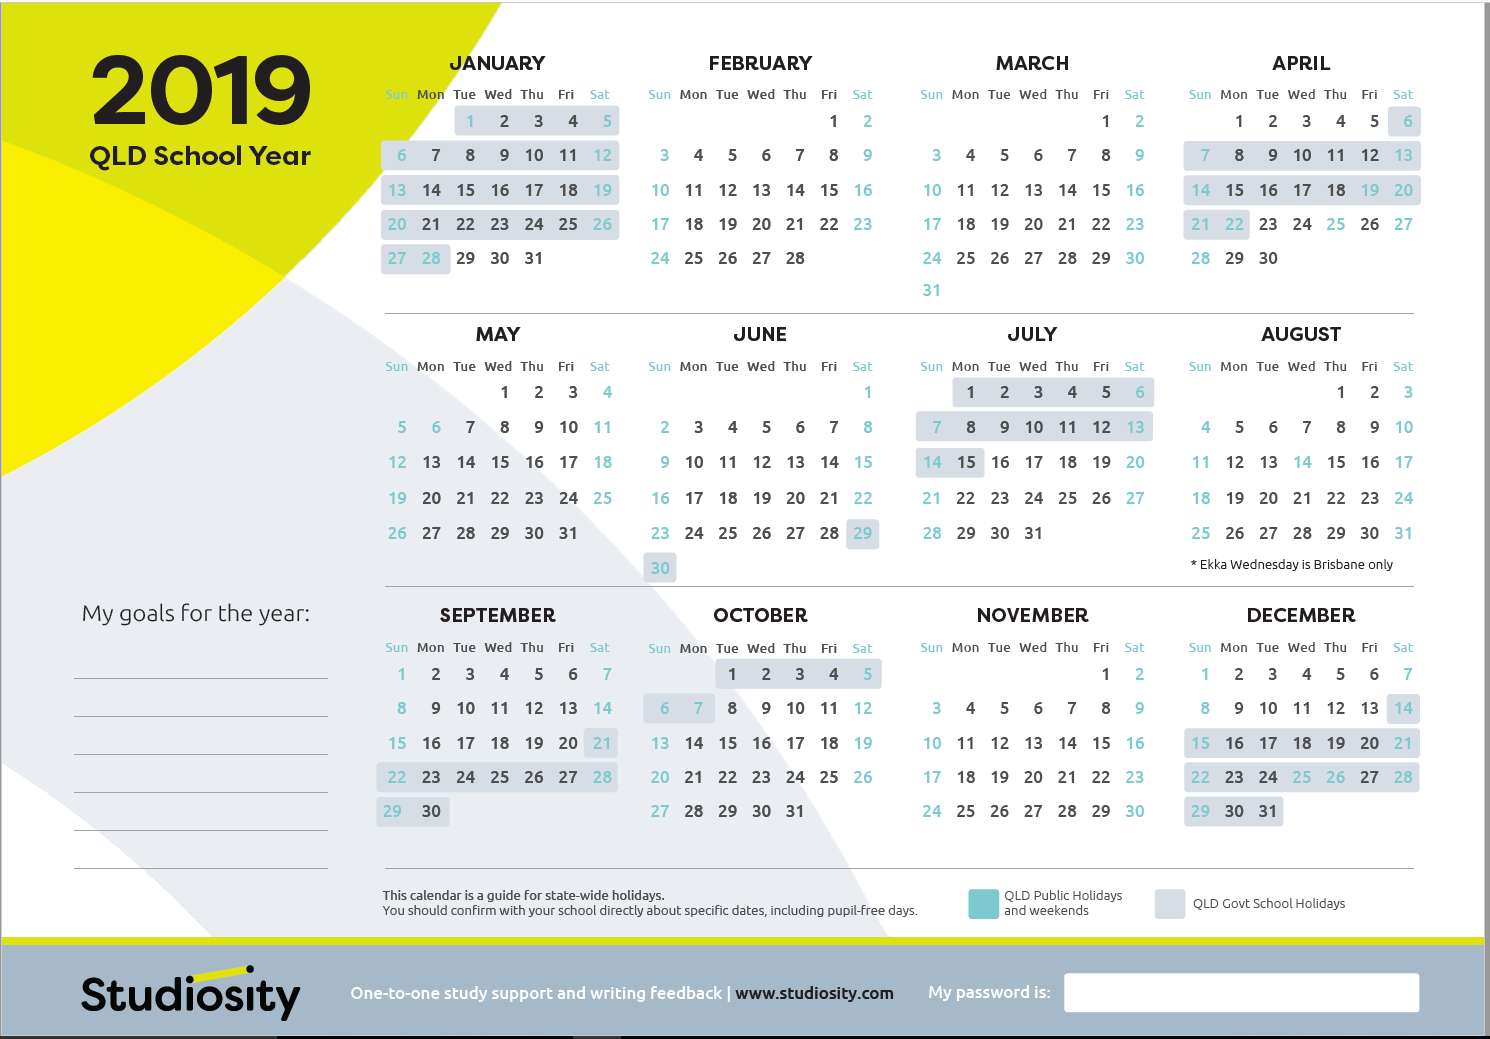 School Terms And Public Holiday Dates For Qld In 2019